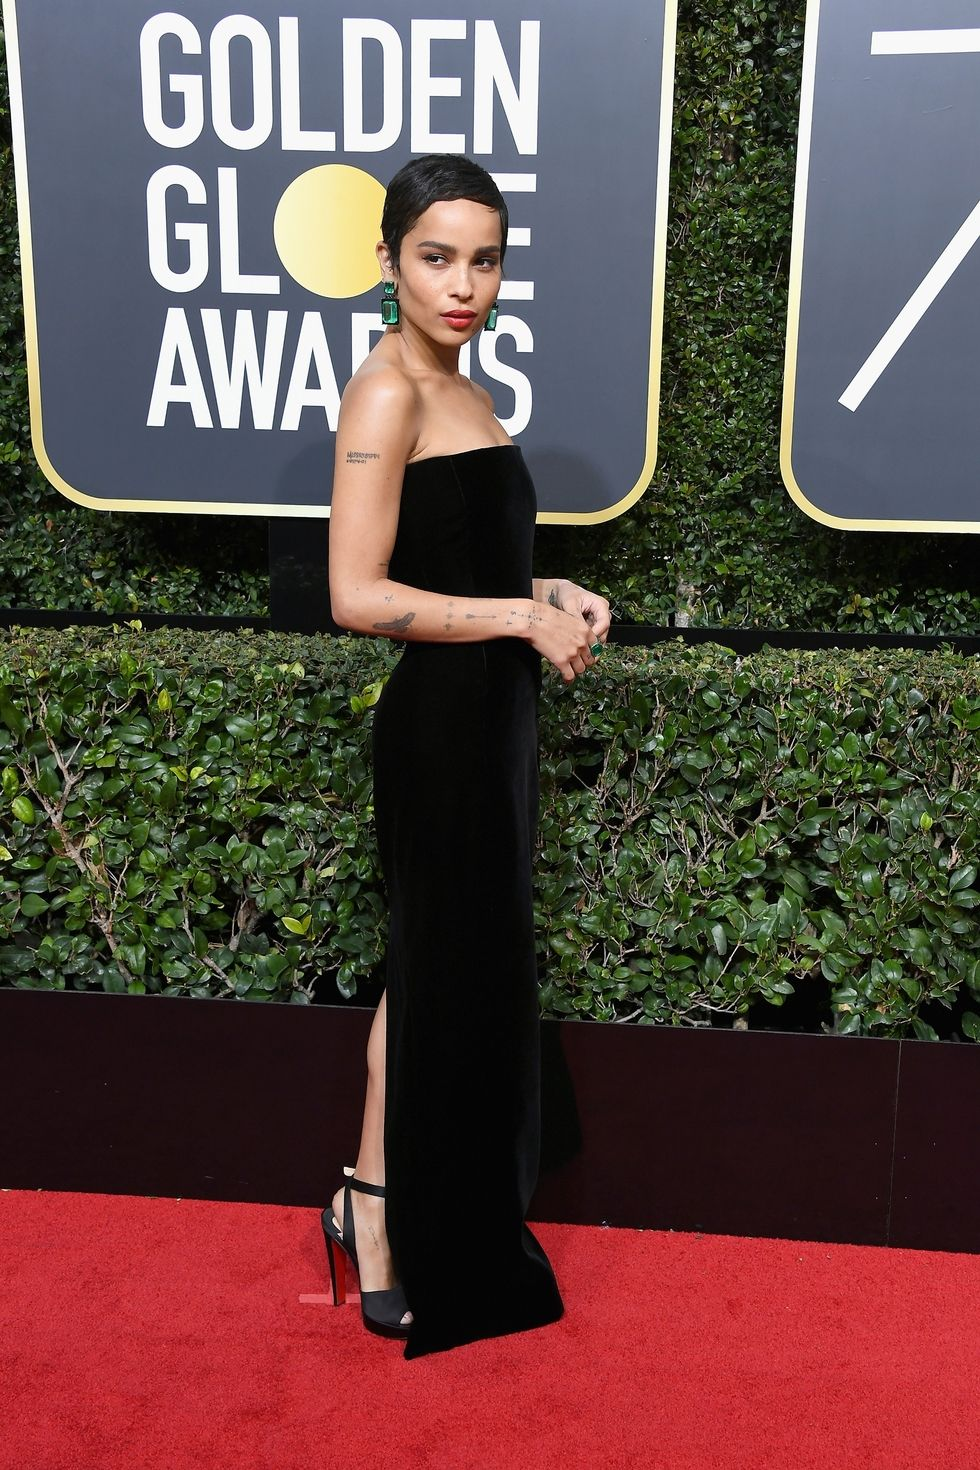 hbz-the-list-golden-globes-2018-zoe-kravitz-1515378045